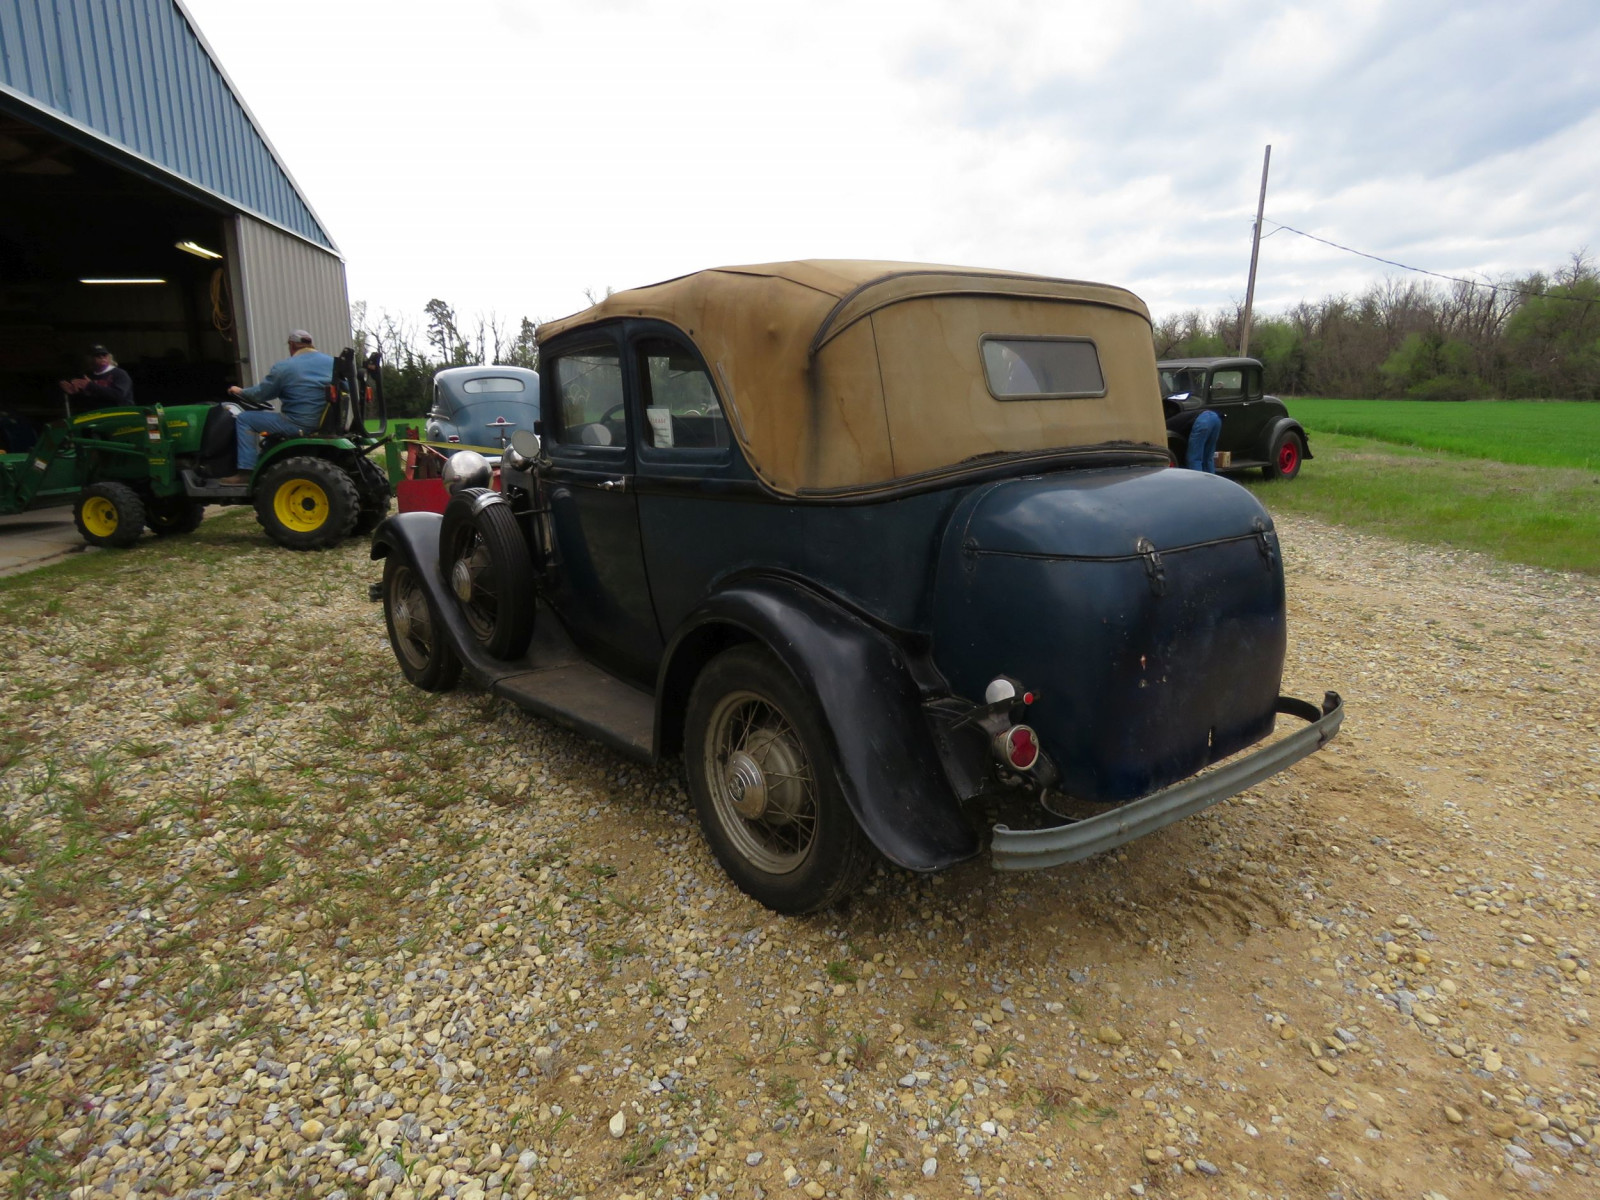 RARE 1932 FORD B400 2DR CONVERTIBLE V8 SEDAN - Image 8